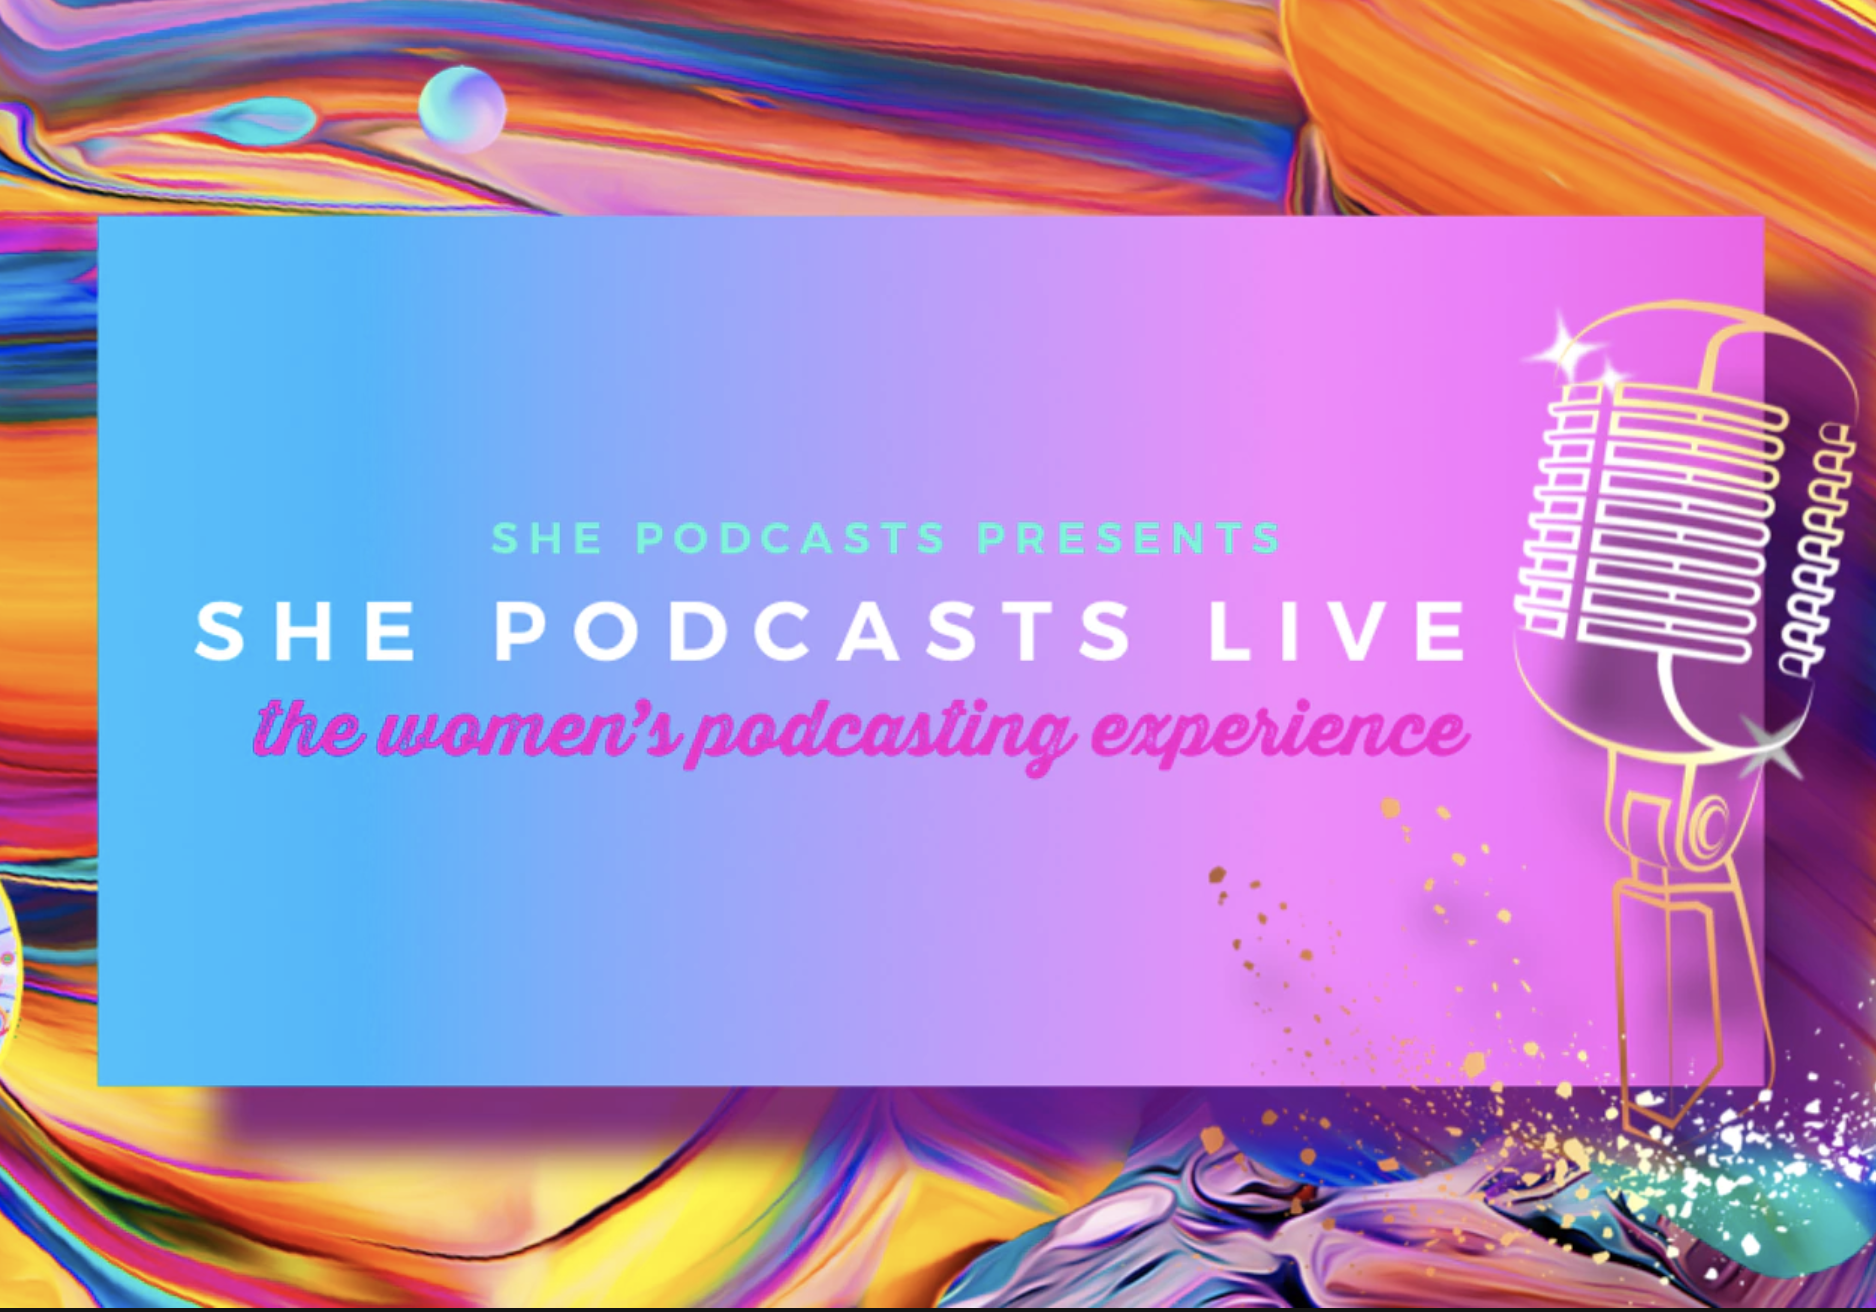 She Podcasts - She Podcasts is a brilliant Facebook group for women who podcast. Whether you're just toying with the idea of starting or have a fully-fledged podcast, you'll find help and support for whatever questions you have and can share your knowledge in return.